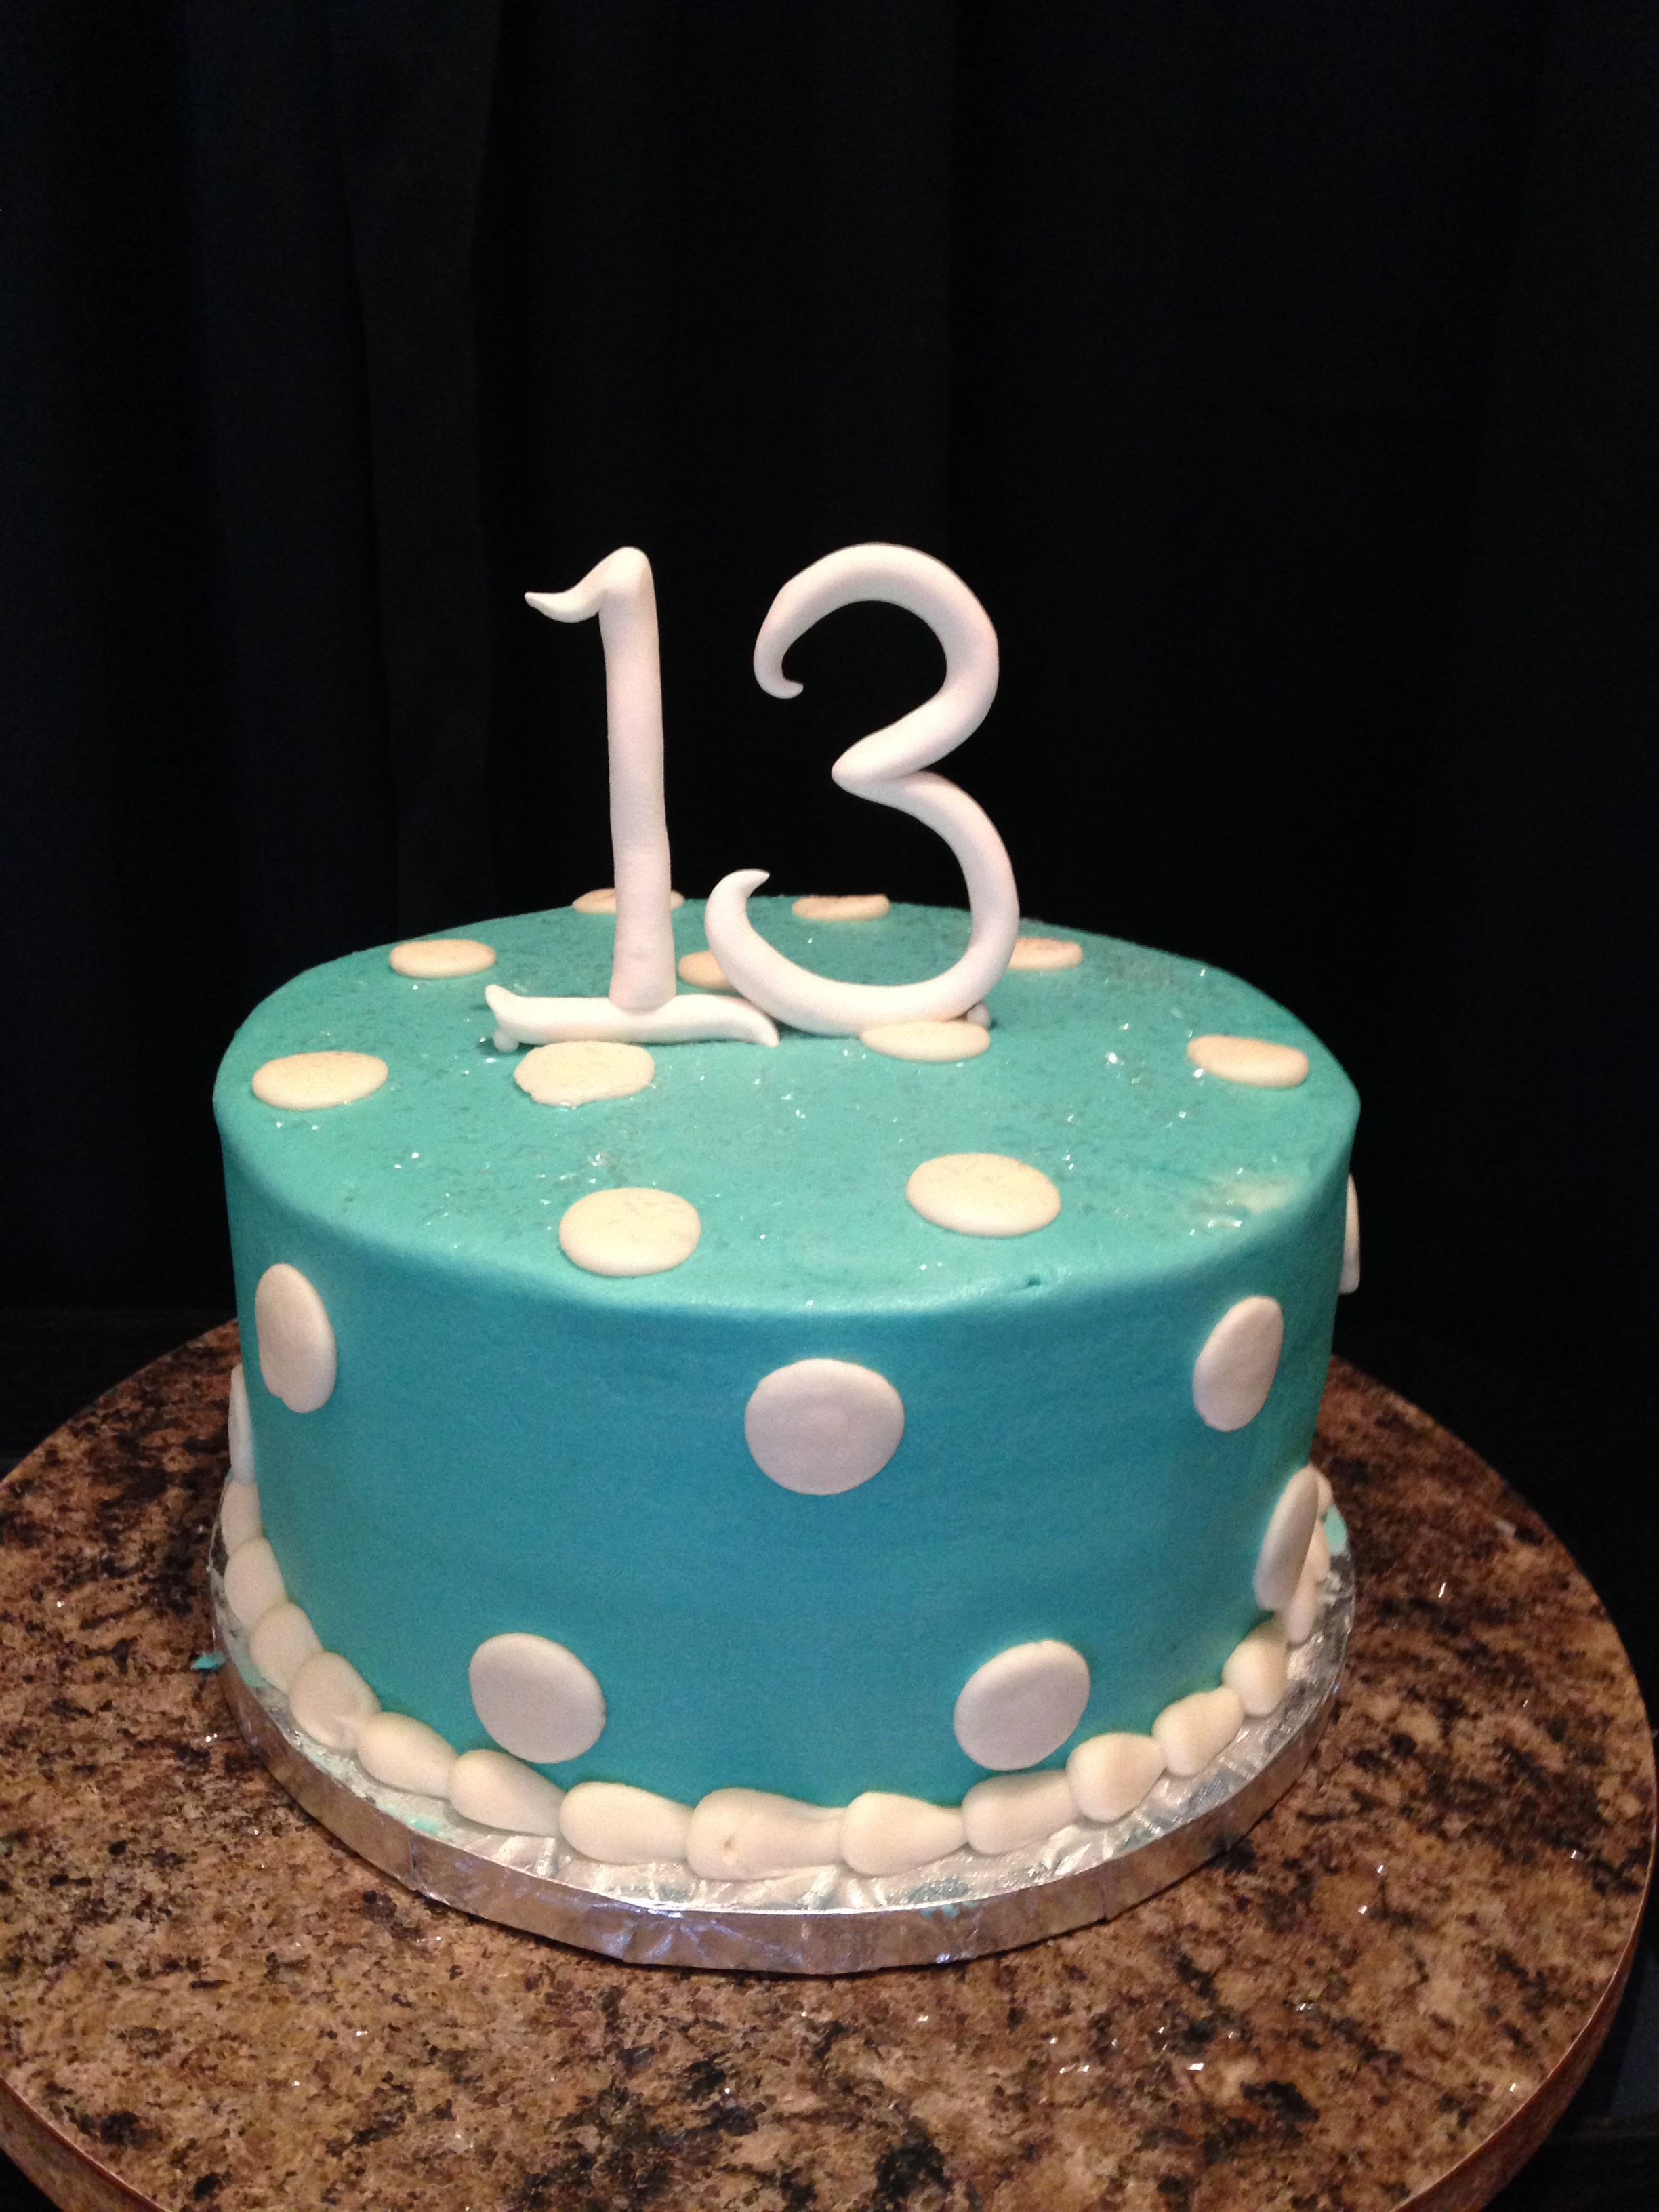 Simple Yet Stylish 13th Birthday Cake Decorated With Fondant